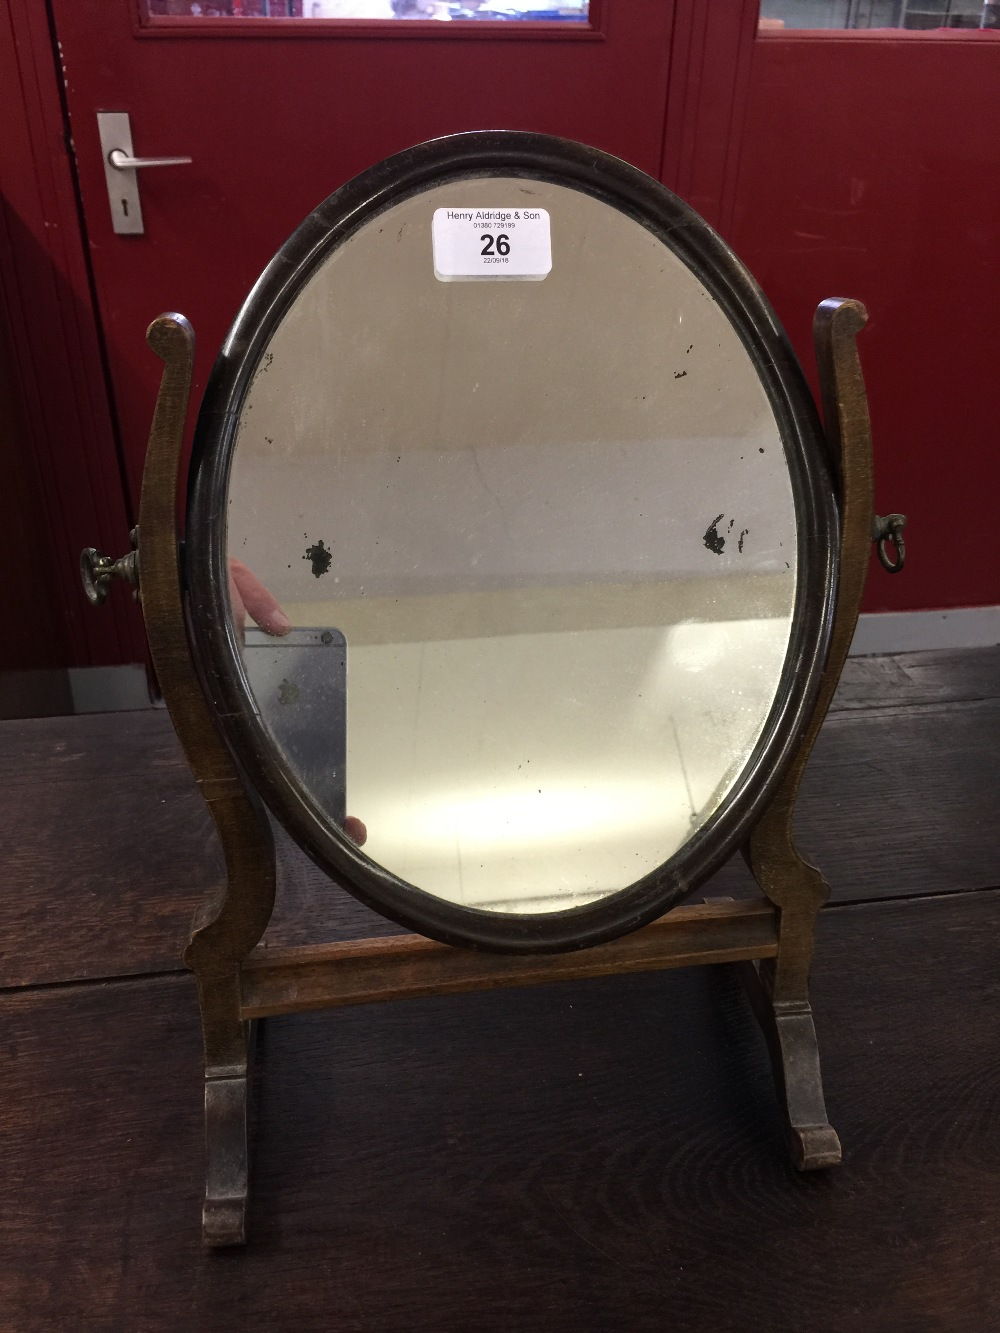 Lot 26 - Early 20th cent. Mahogany gentleman's shaving mirror. Swing frame, small proportions. 11ins. x 8¾